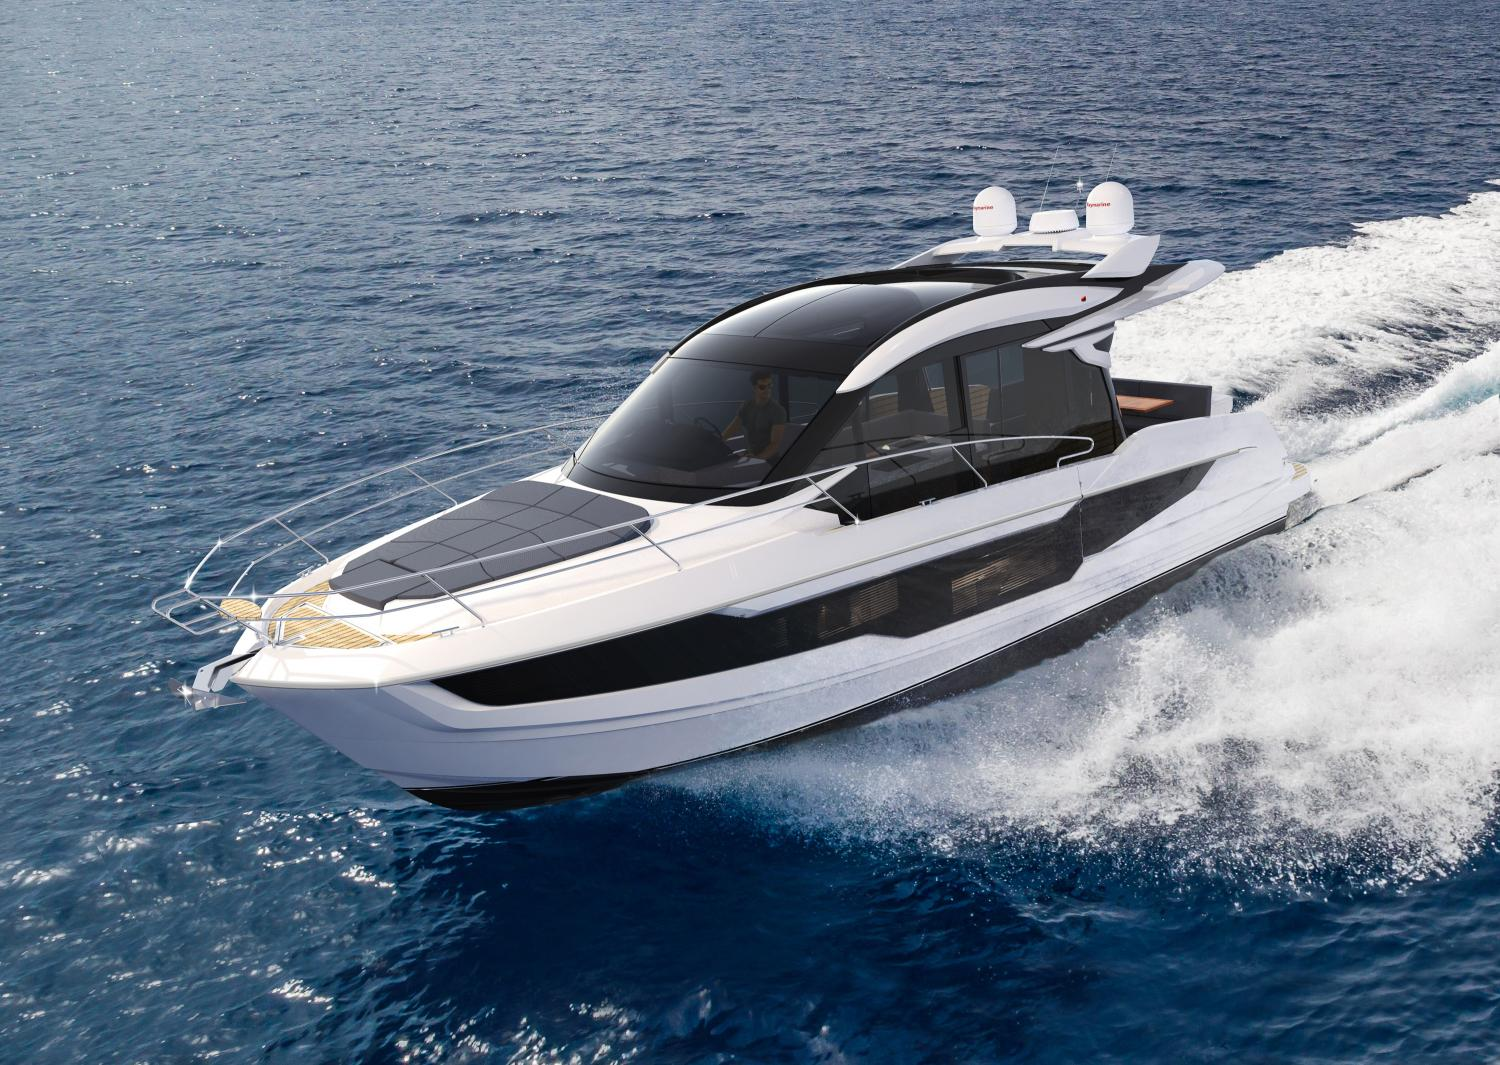 Image 2 for Multi-Award-Winning Galeon Extends Range and Reach